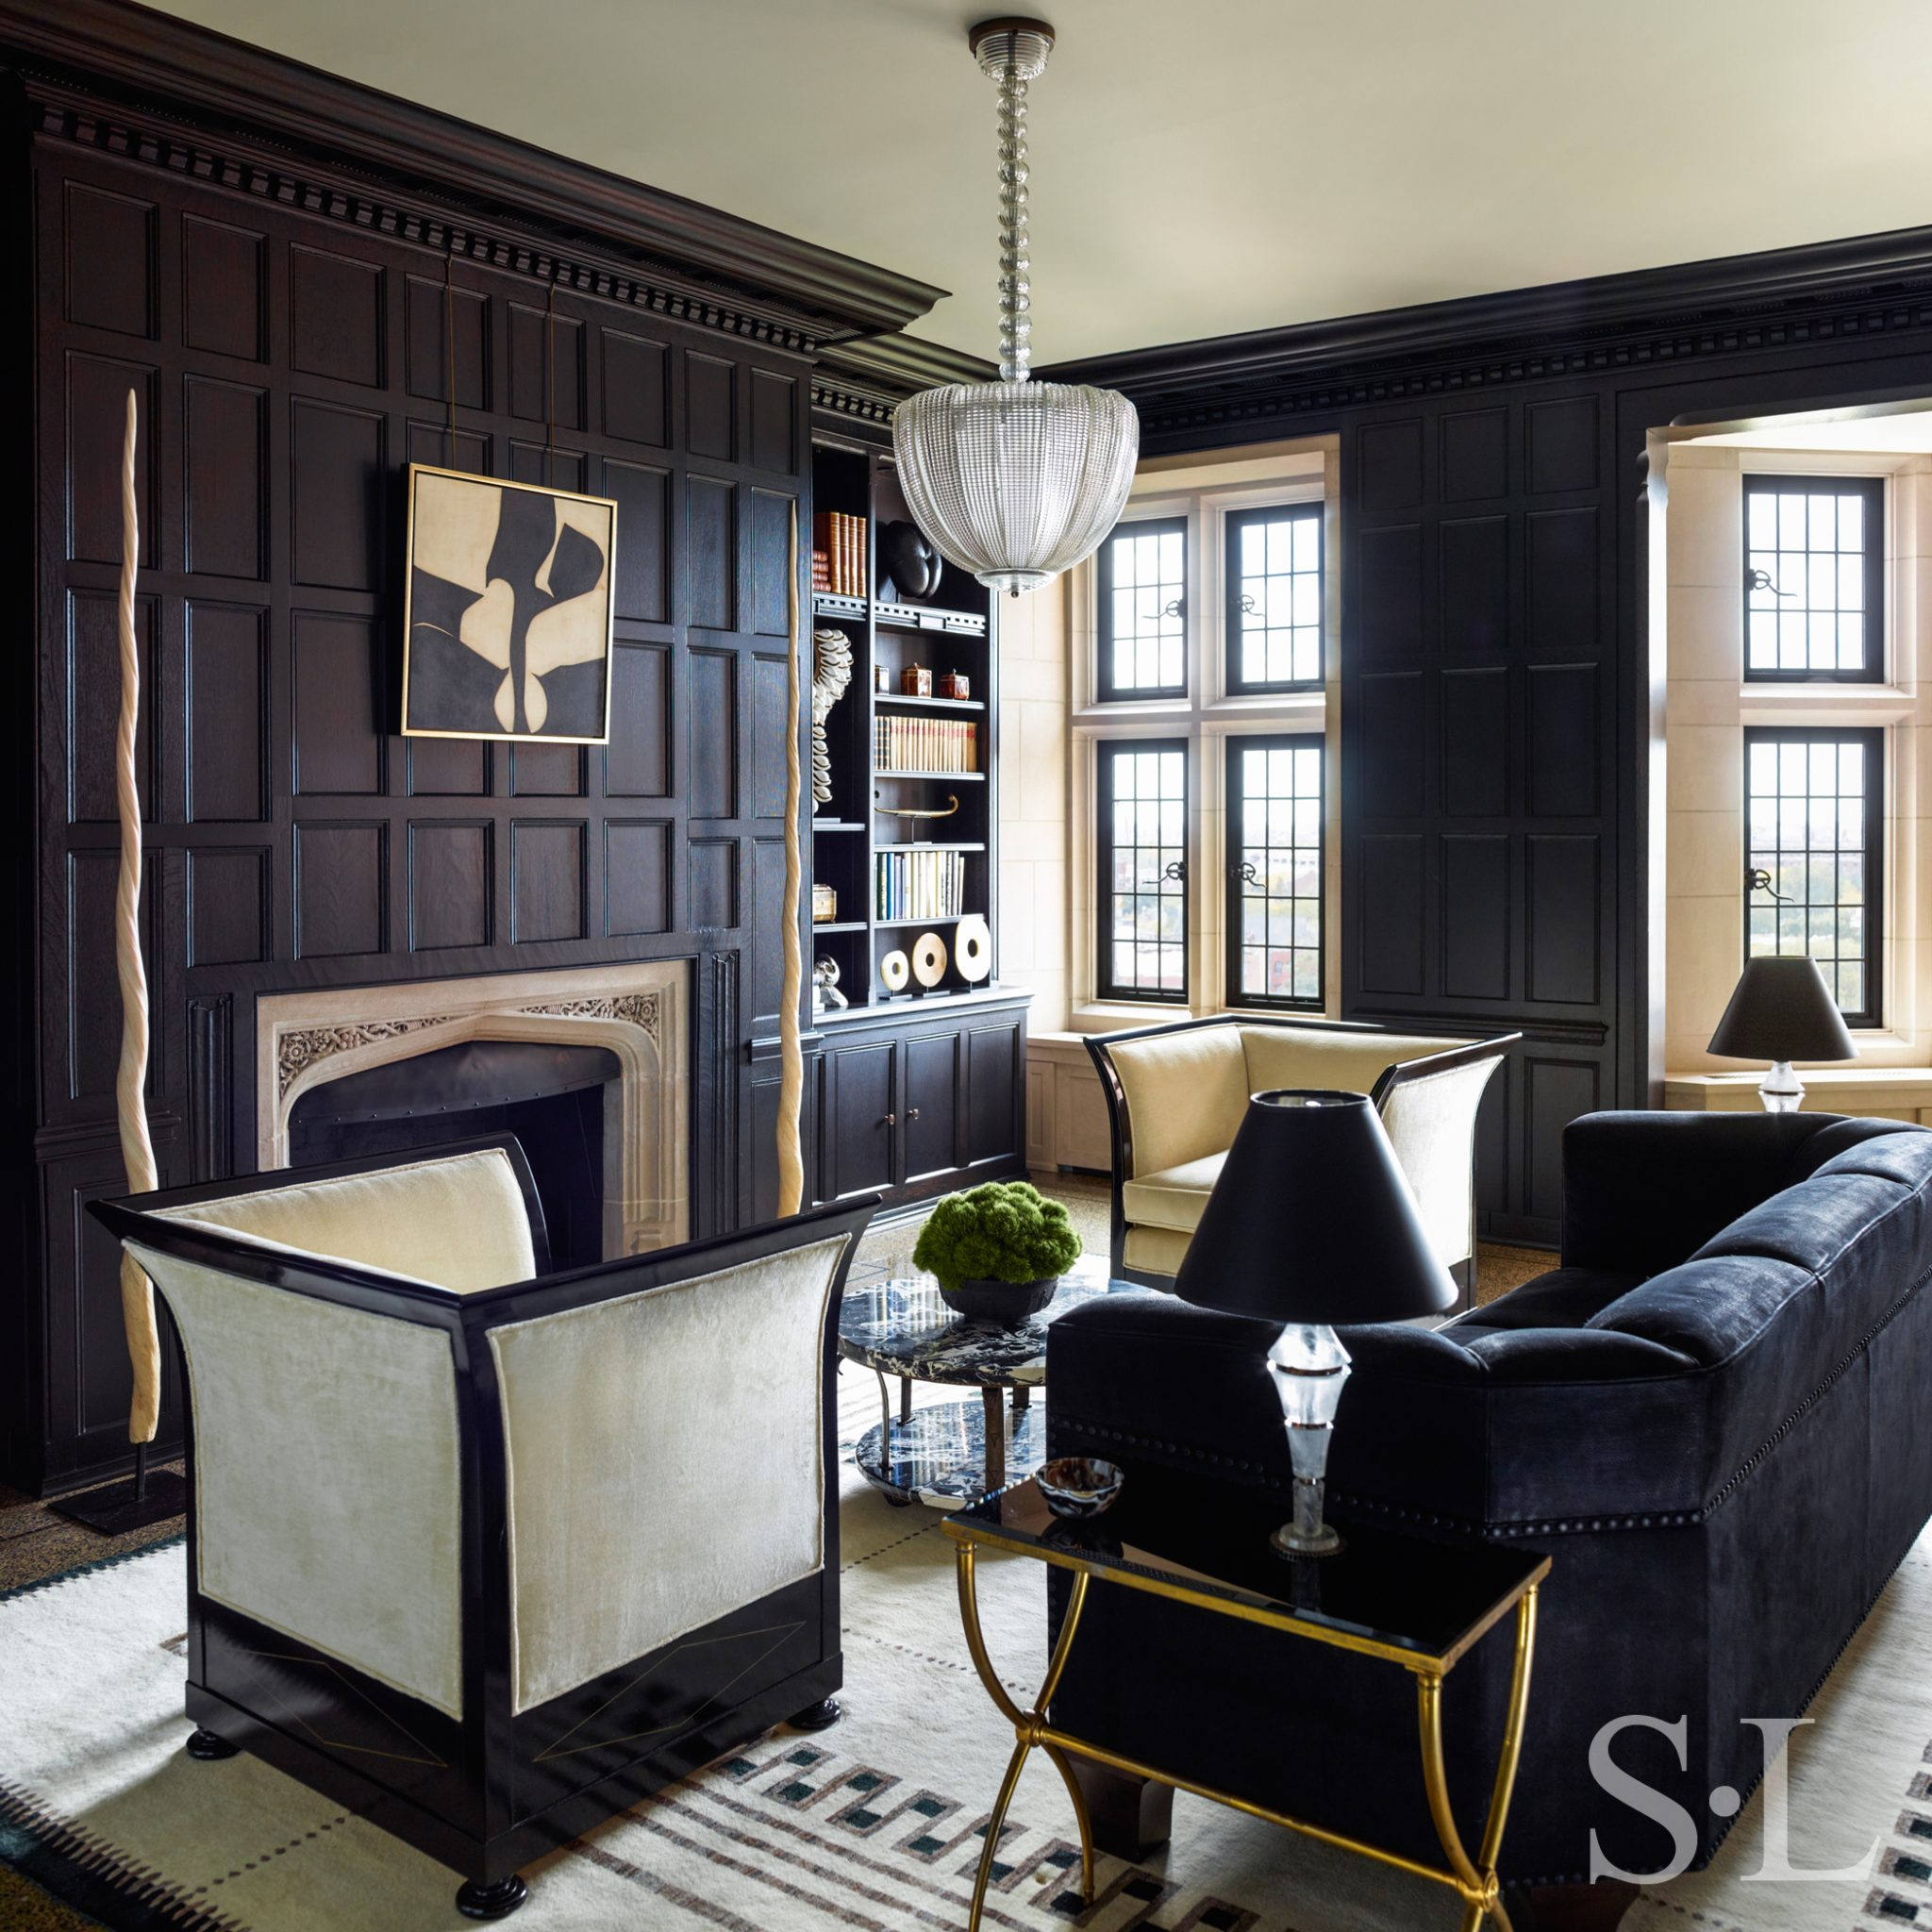 Interior design by Suzanne Lovell, Inc.